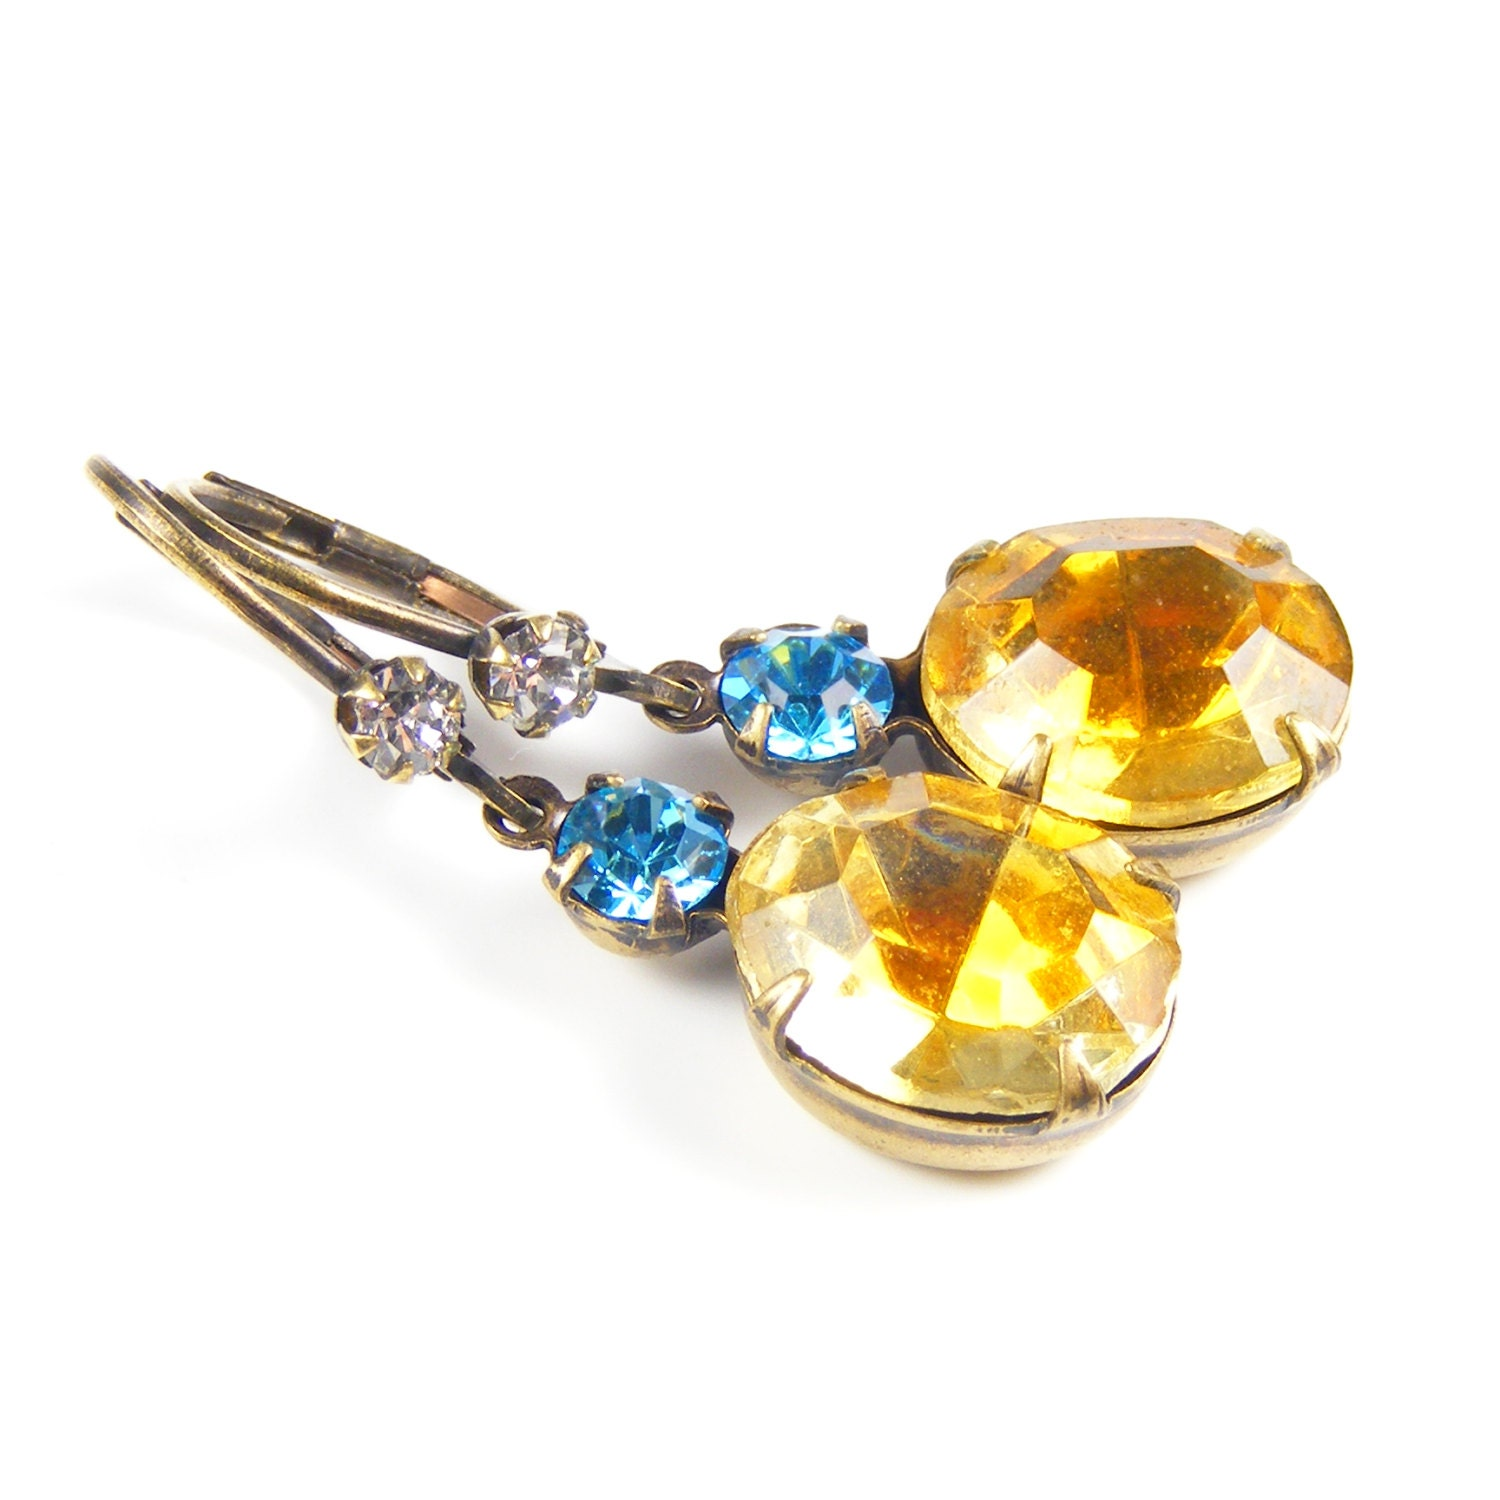 Topaz Aqua Crystal Earrings, Estate Style Drop Earrings, Genuine 1950s Vintage Rhinestones, Vintage Inspired Gatsby Jewellery